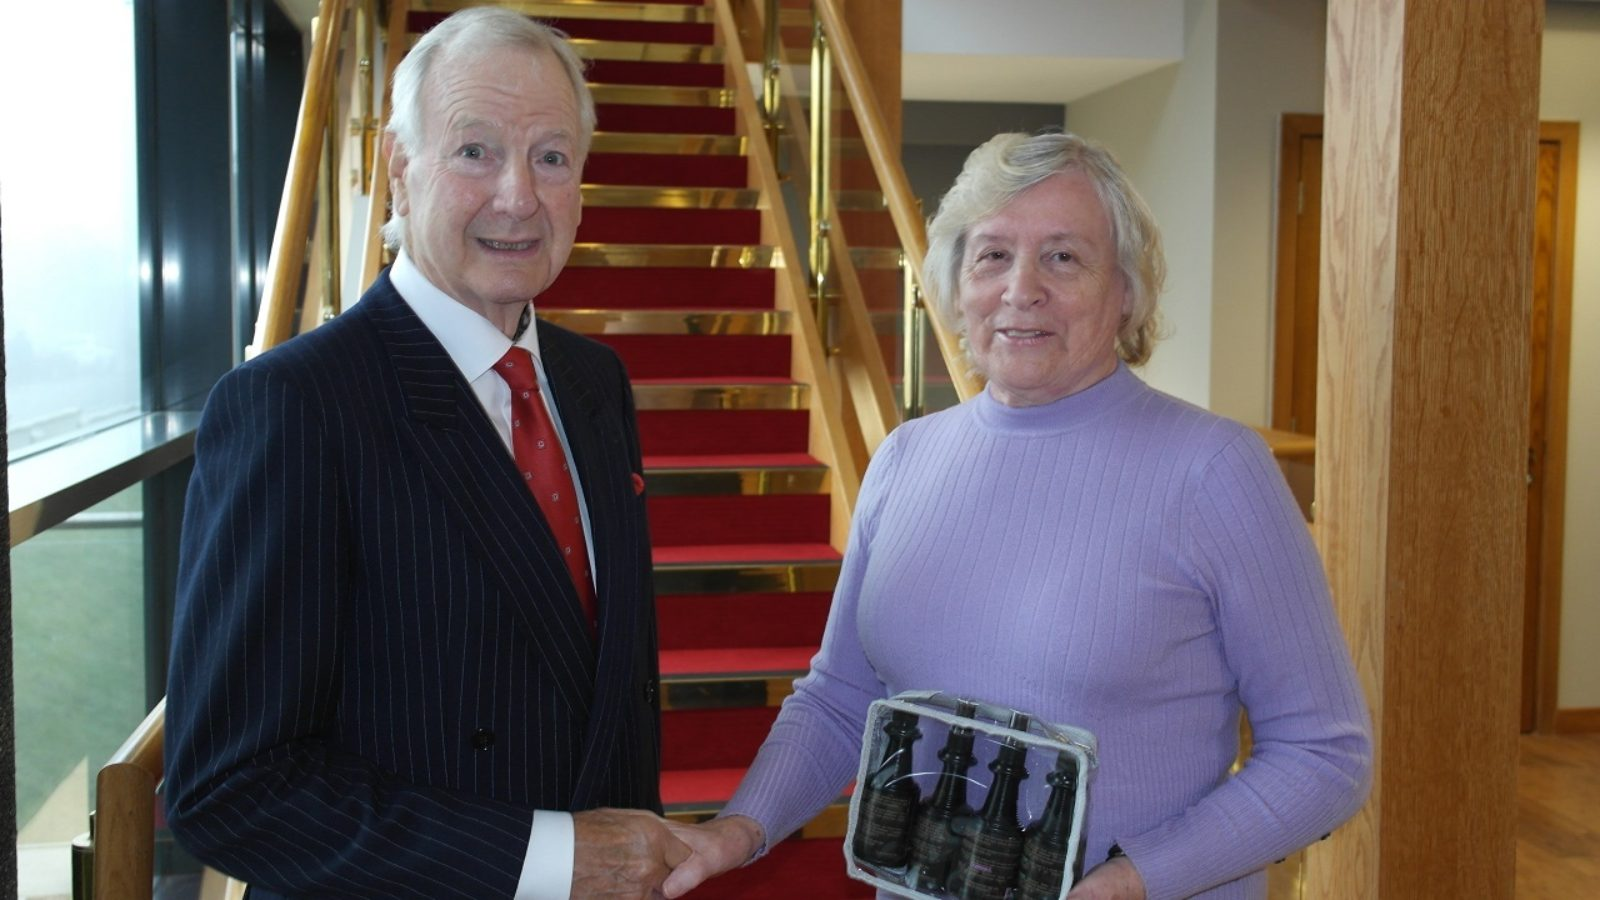 Long-service award gifted to Friends of ANCHOR provides direct support for cancer patients going through hair loss